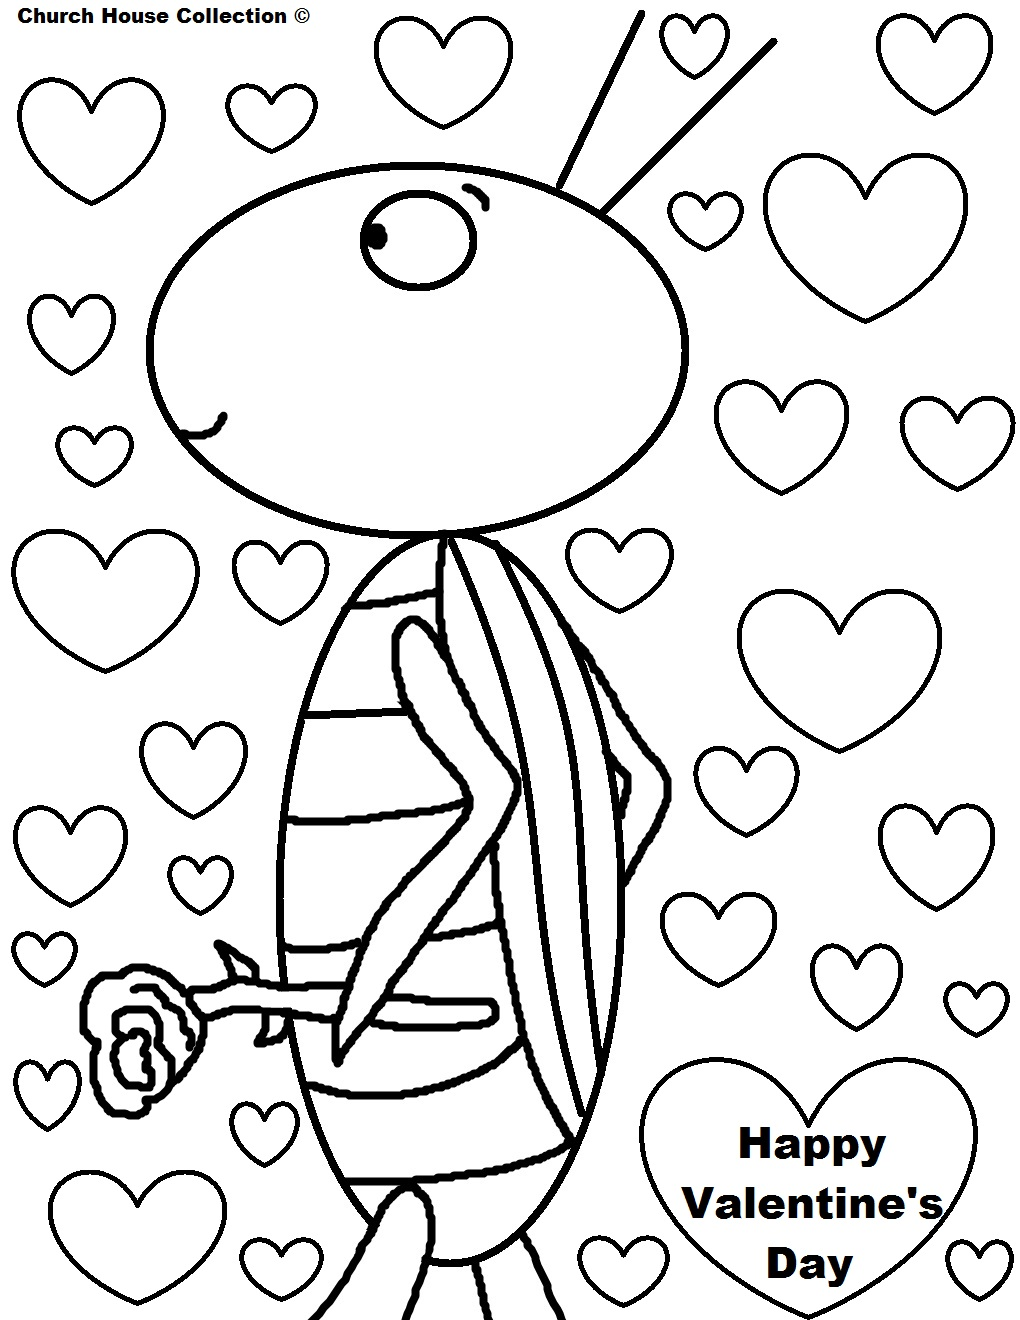 Be My Valentines Day Coloring Pages - Free Printable ...